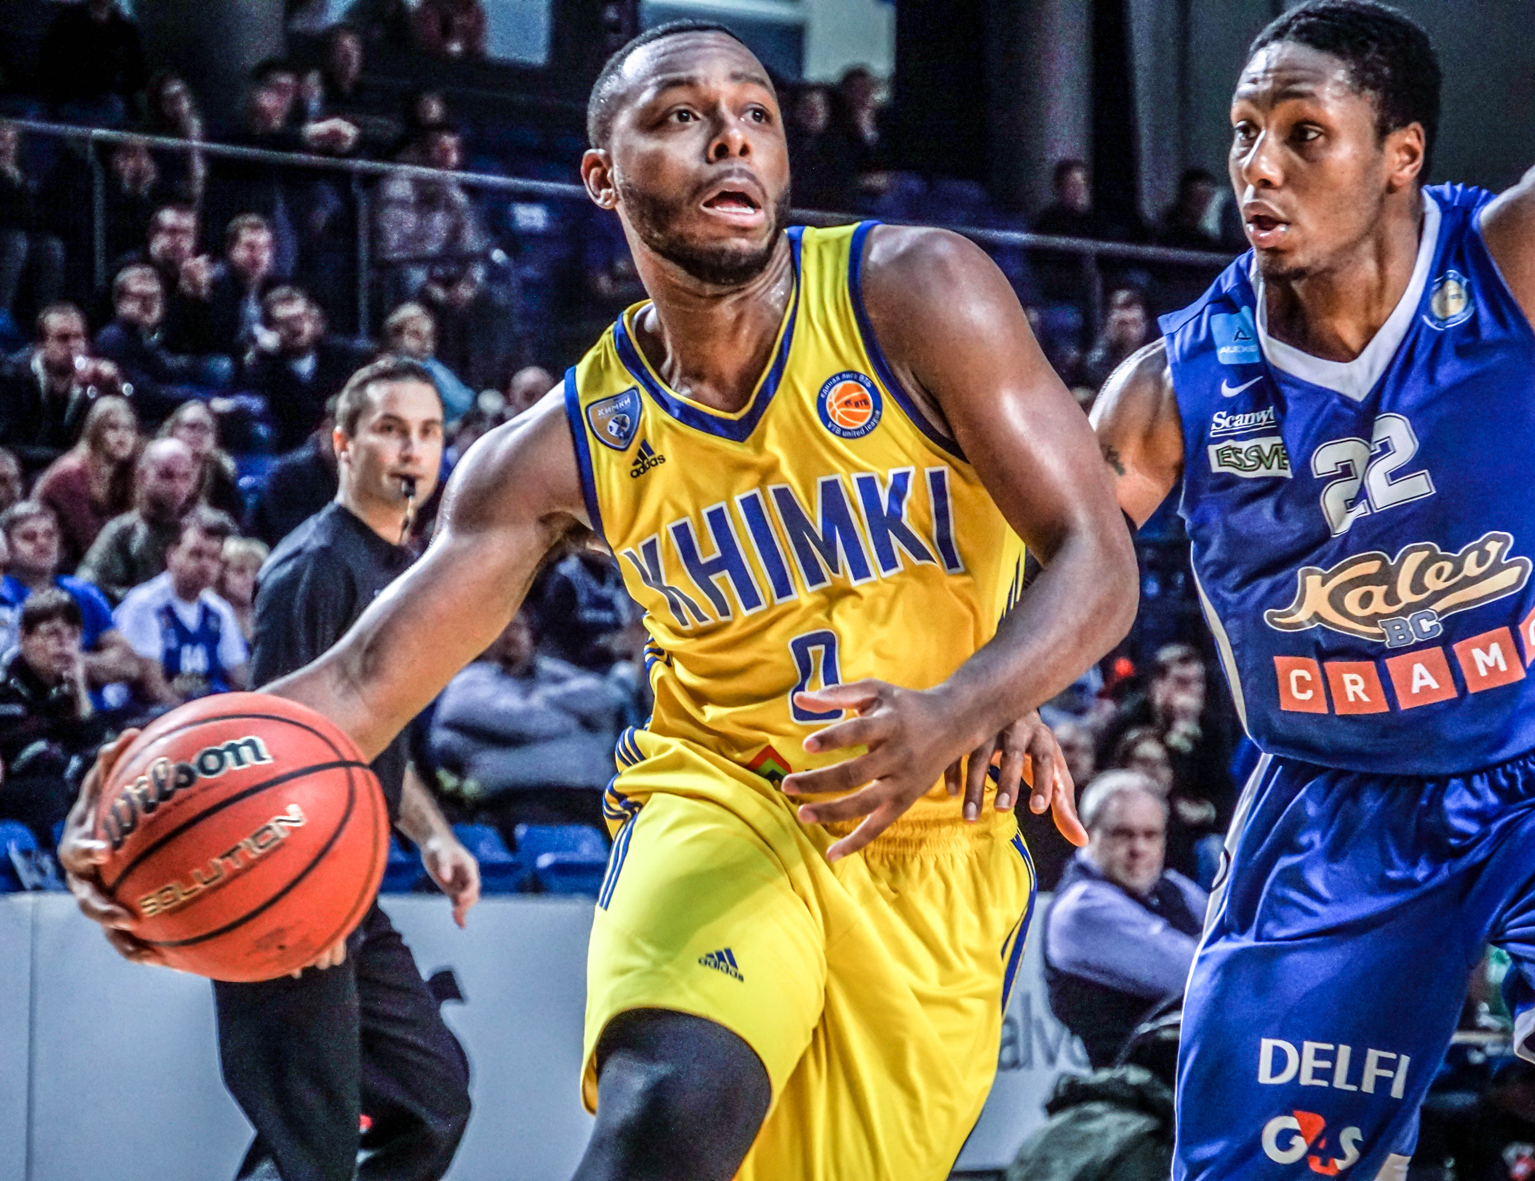 Khimki Survives In Tallinn Behind Pullen's 24